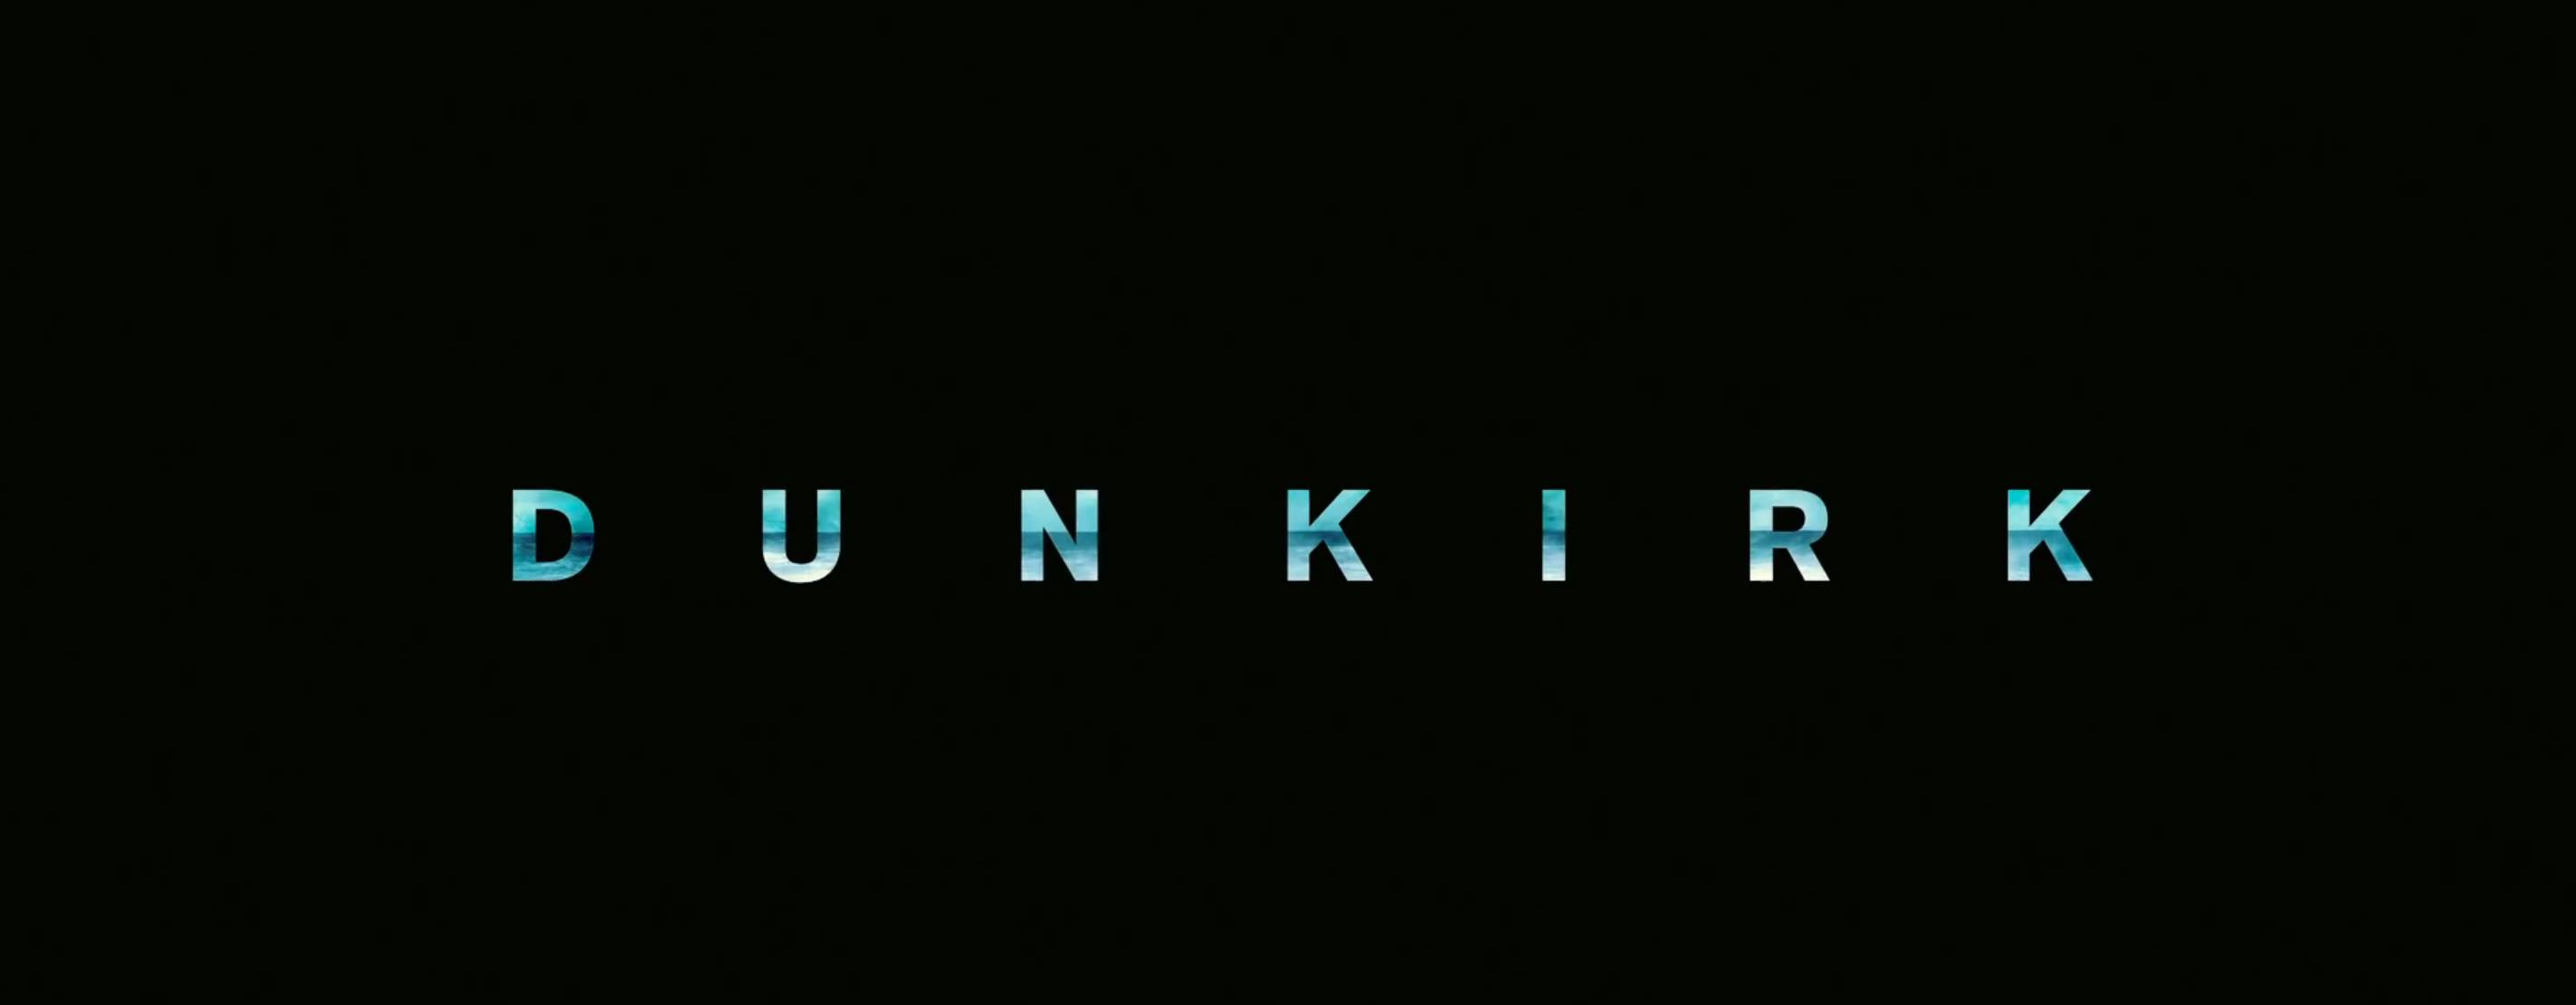 First official trailer of Christopher Nolan's 'Dunkirk' is here